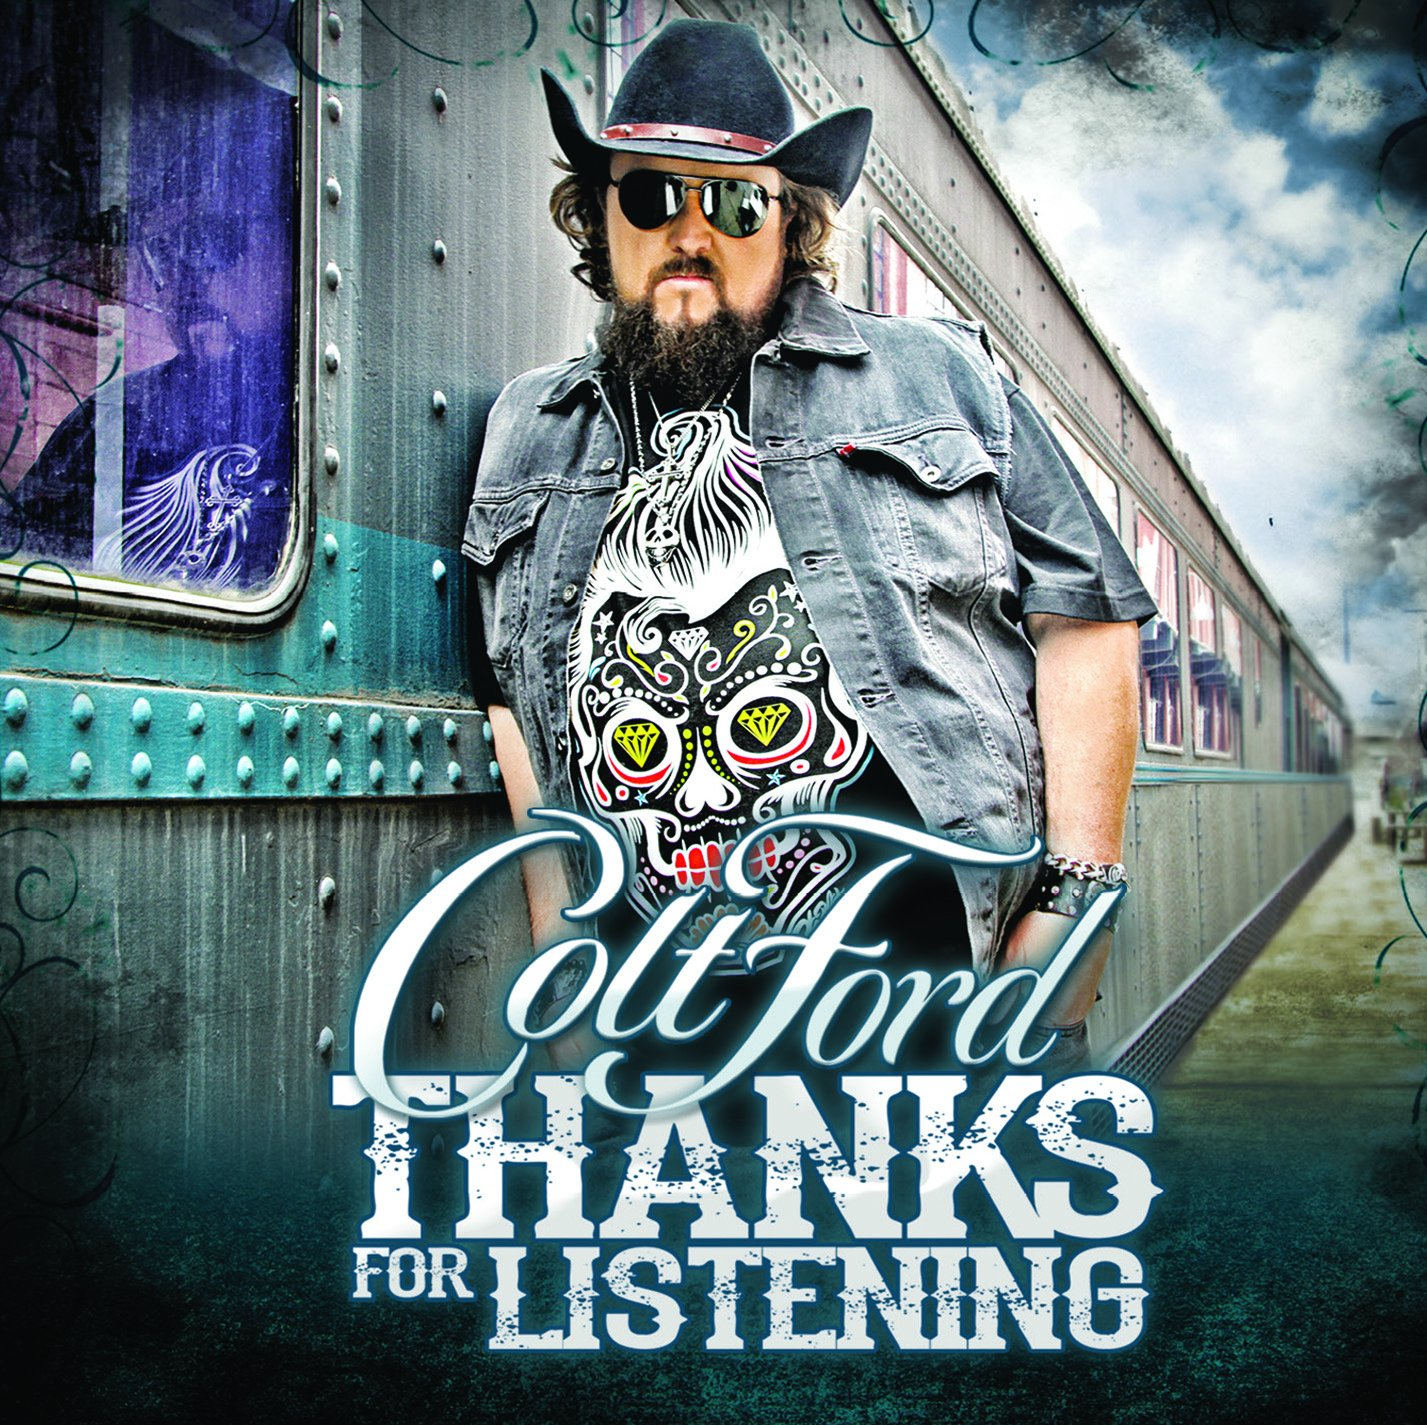 Colt Ford Thanks